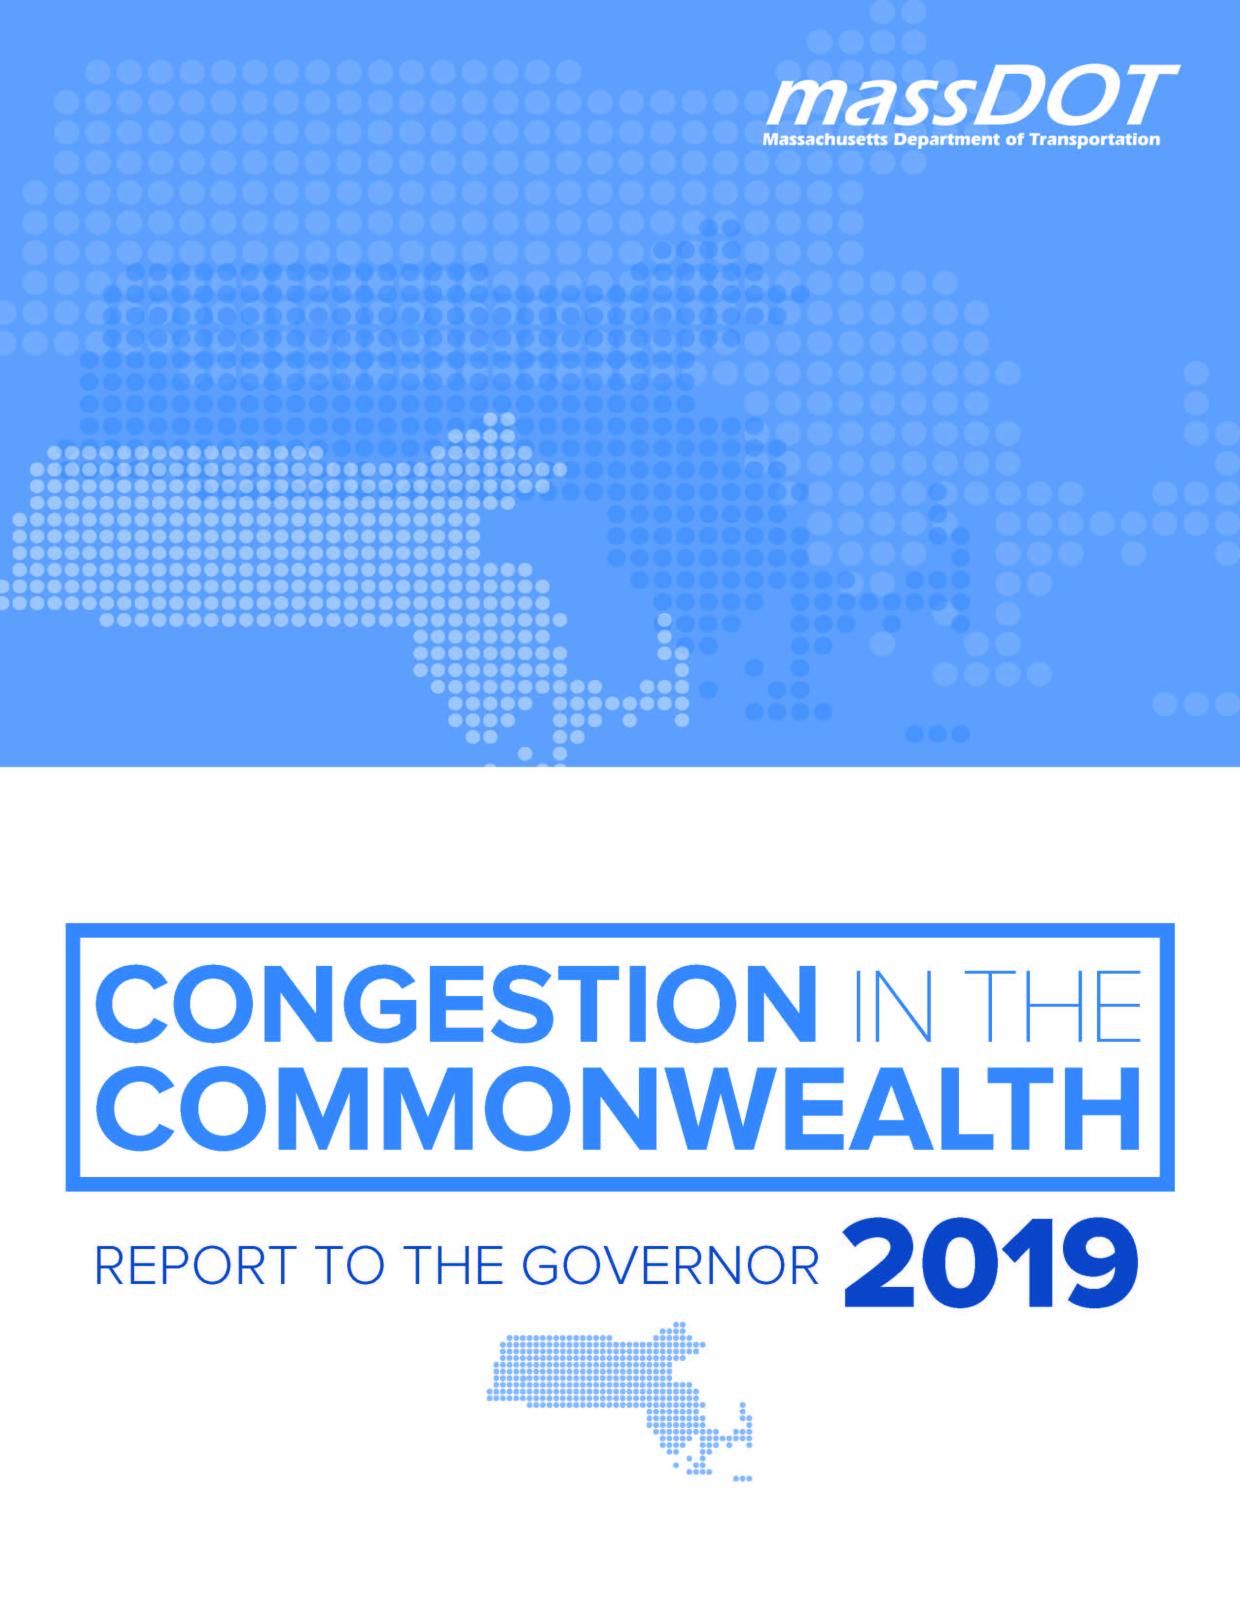 Congestion Report Cover page image